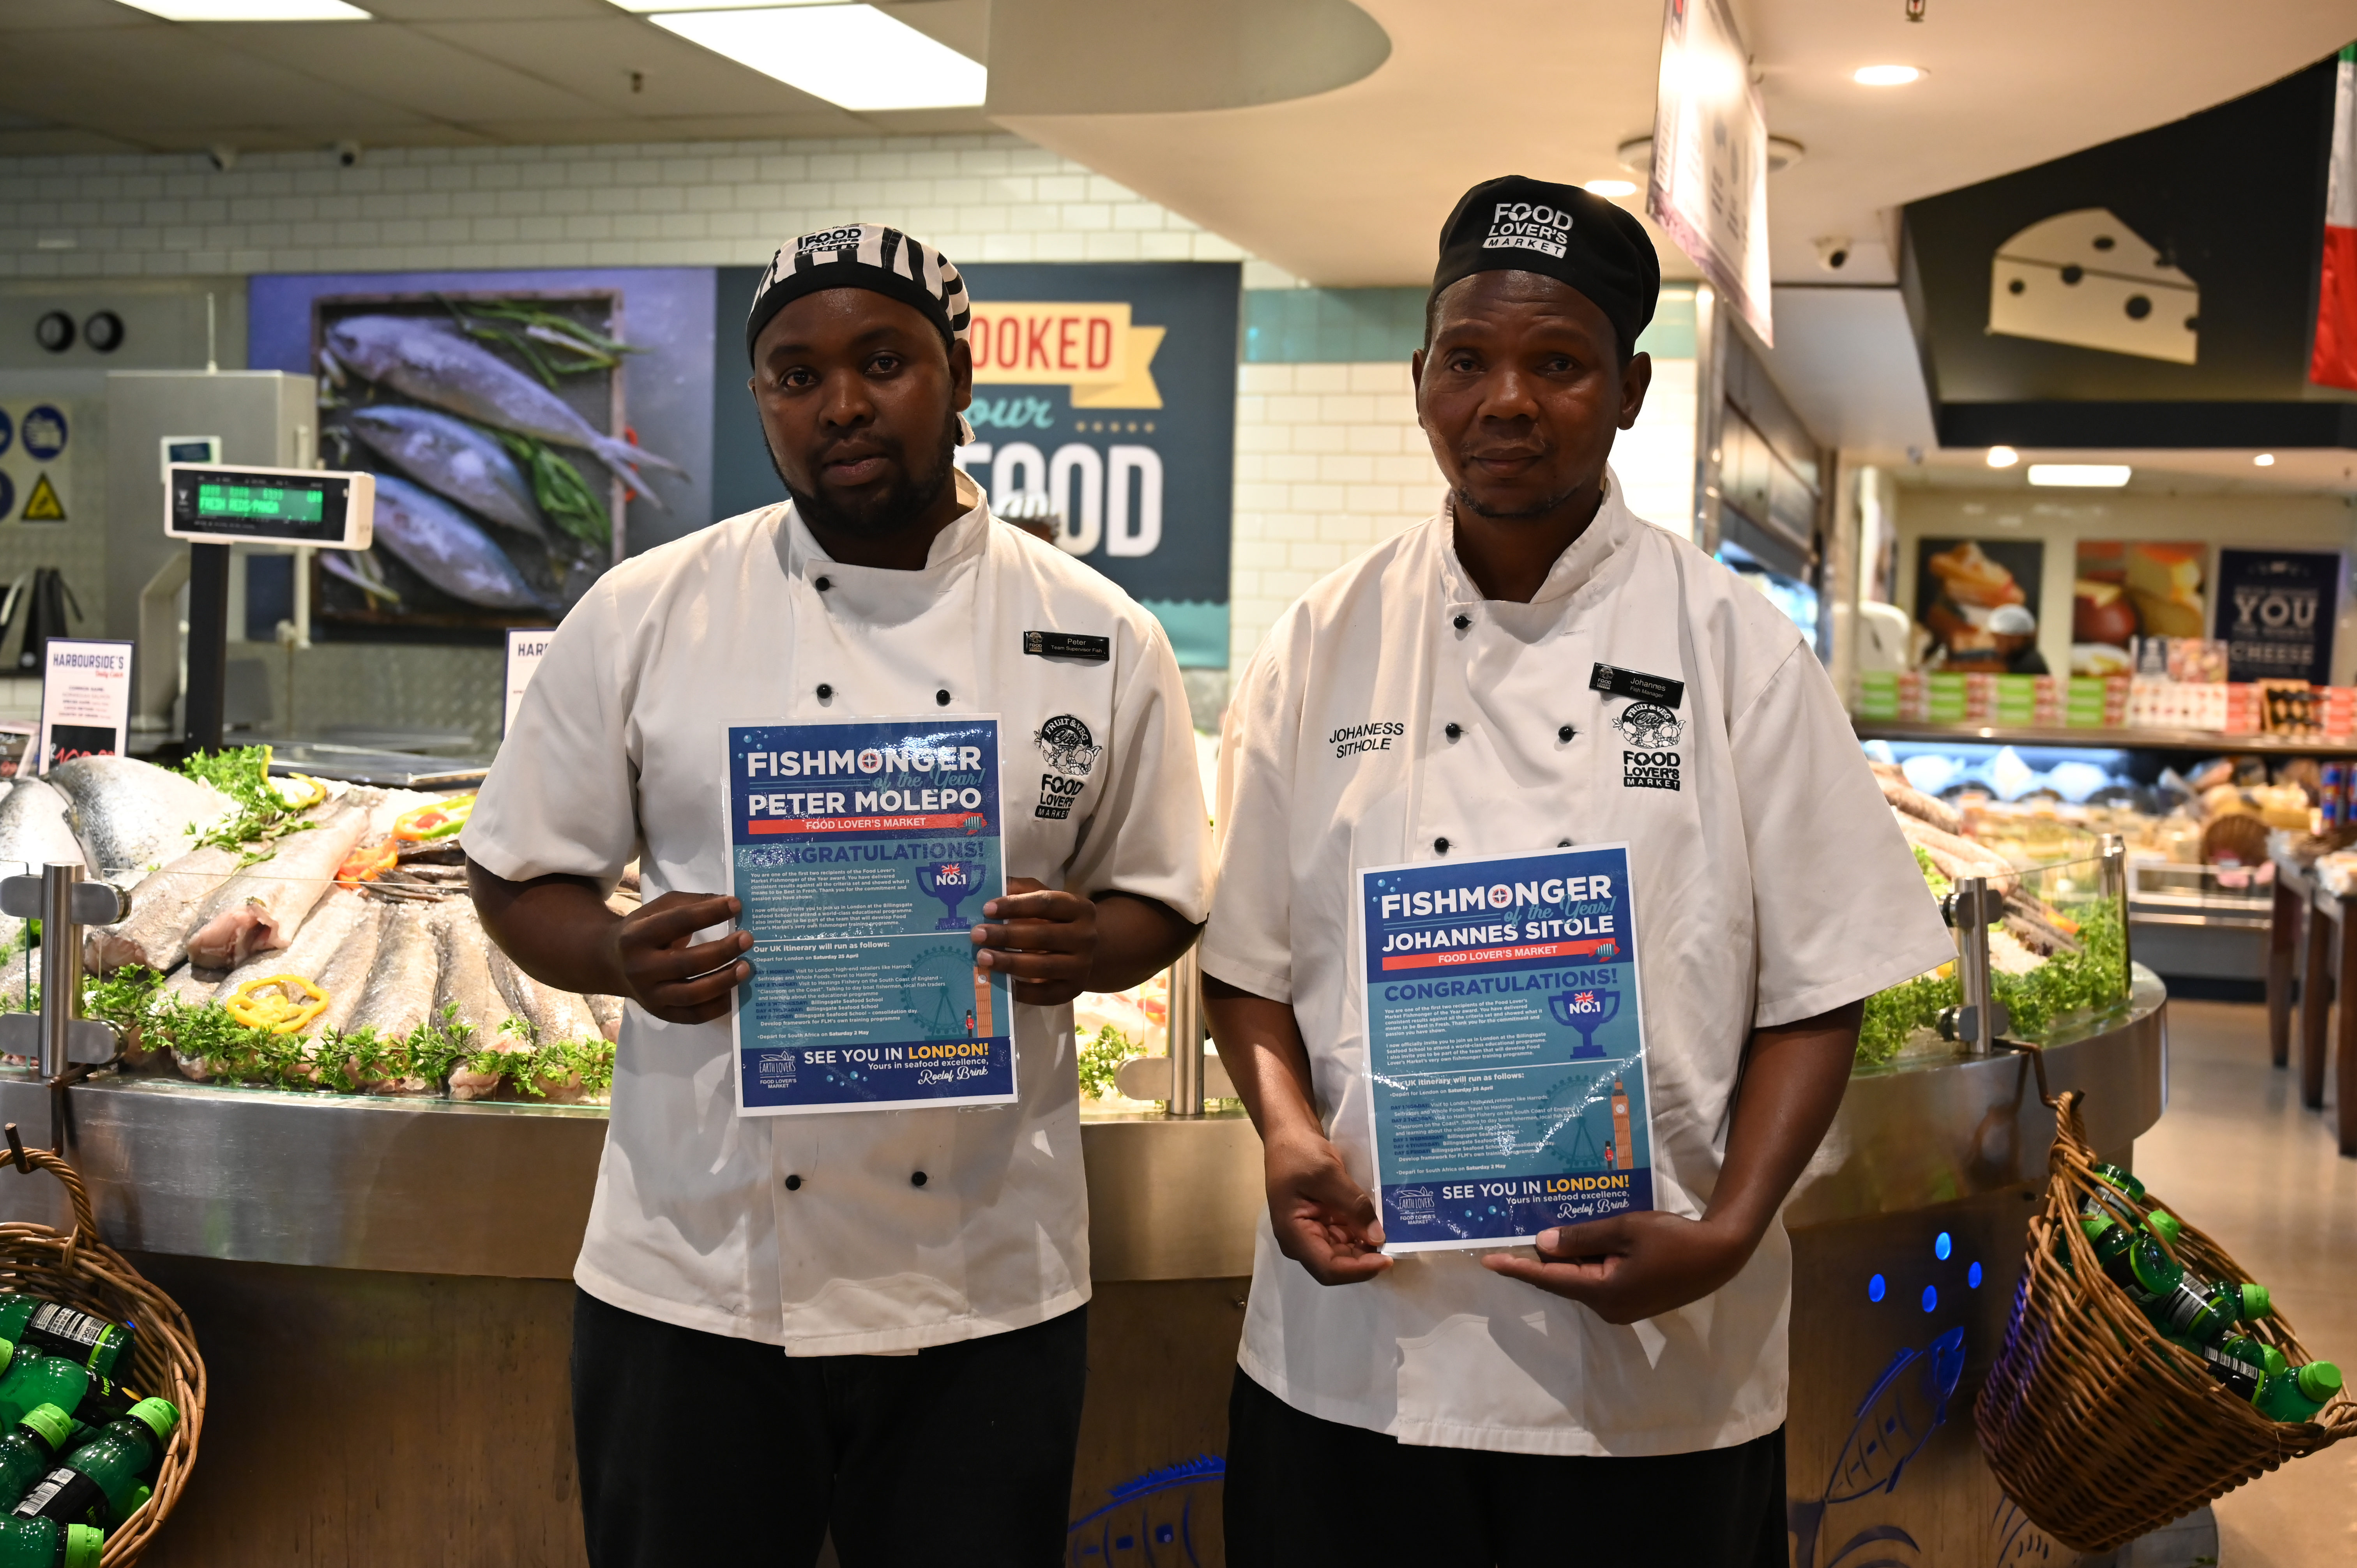 Winners of the Food Lovers Fishmonger awards